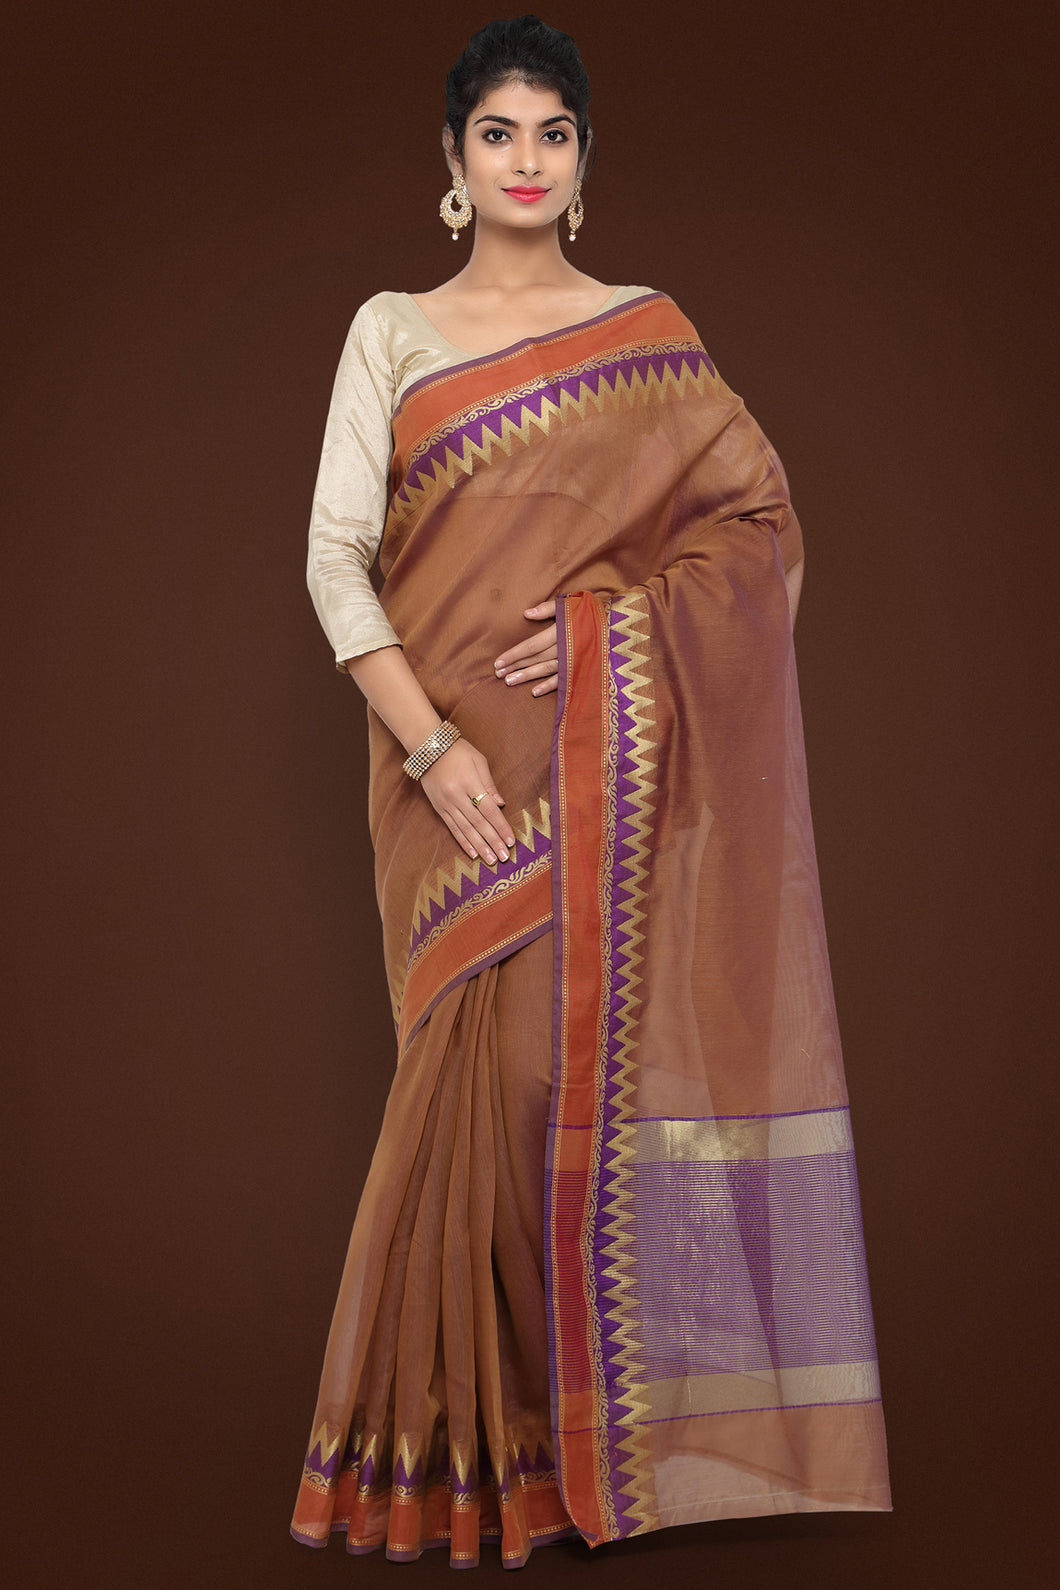 Bhelpuri Brown Chanderi Cotton Saree with Chanderi Cotton Blouse Piece